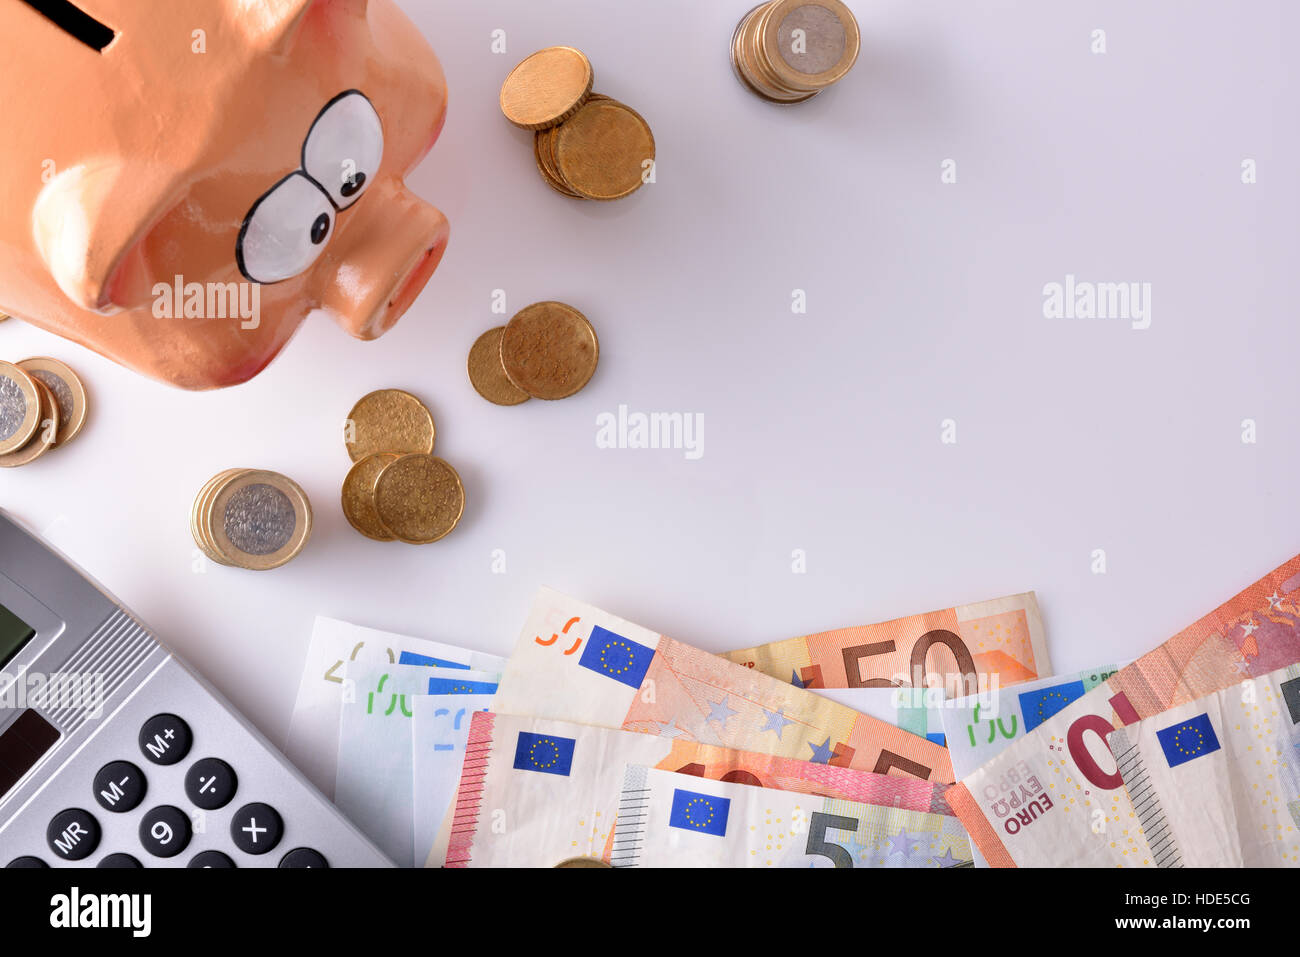 Concept savings and accounting with piggy bank and stacked coins and bills, and calculator on table and white background. - Stock Image